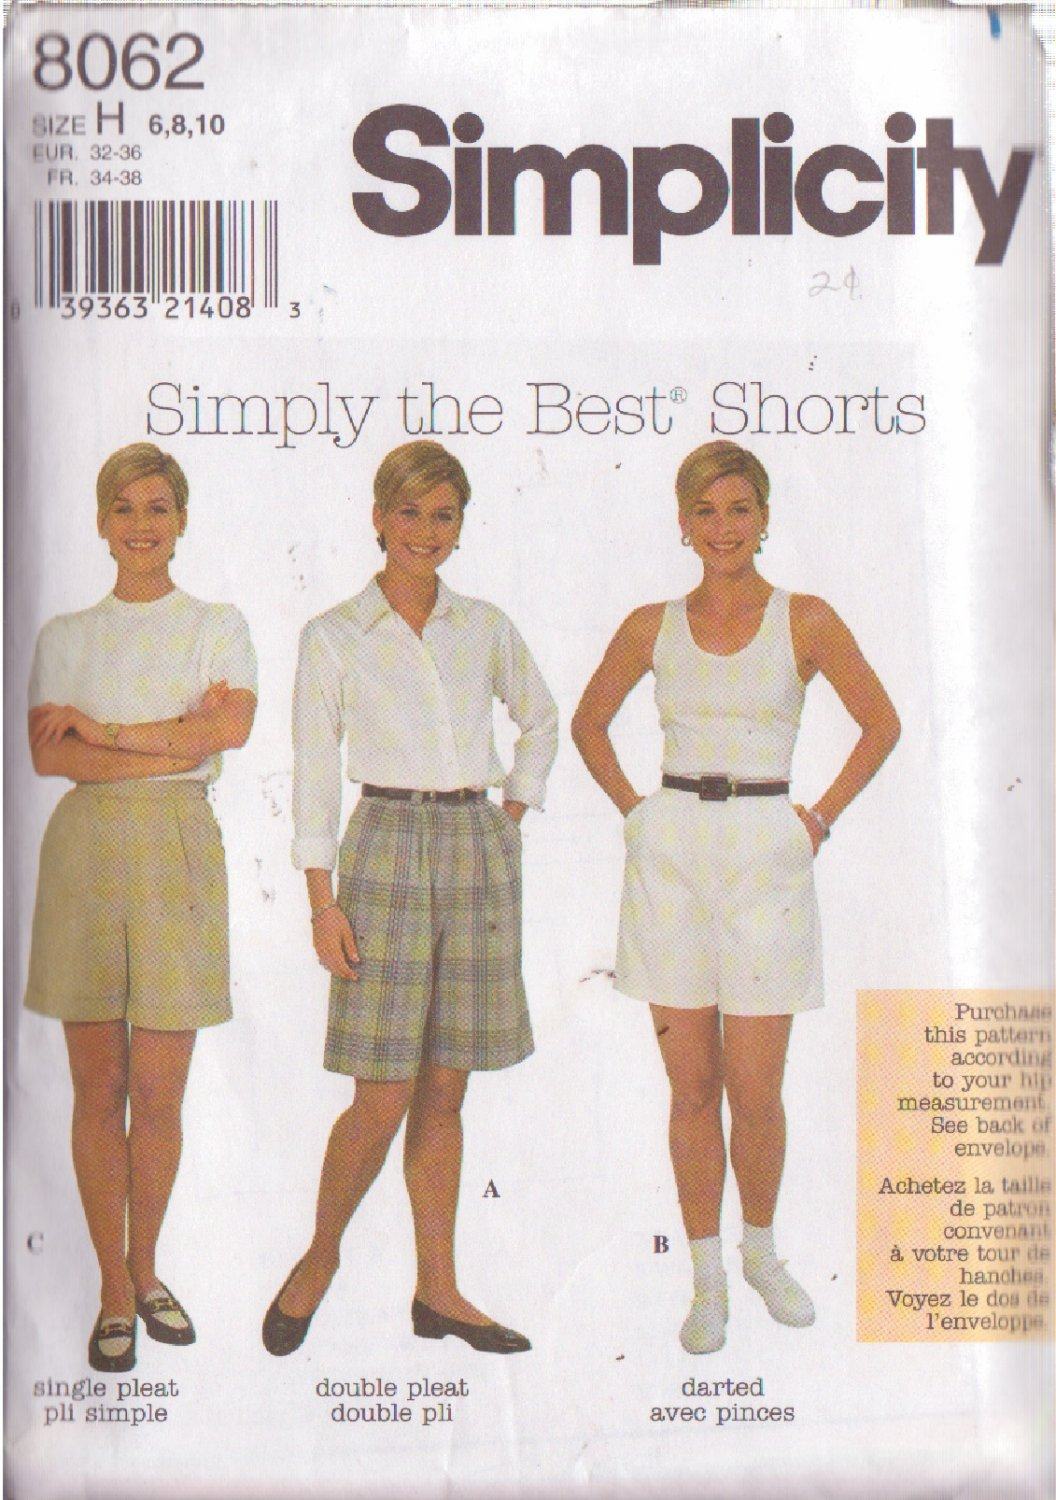 SIMPLICITY PATTERN 8062 MISSES' SHORTS IN 3 VARIATIONS SIZES 6/8/10